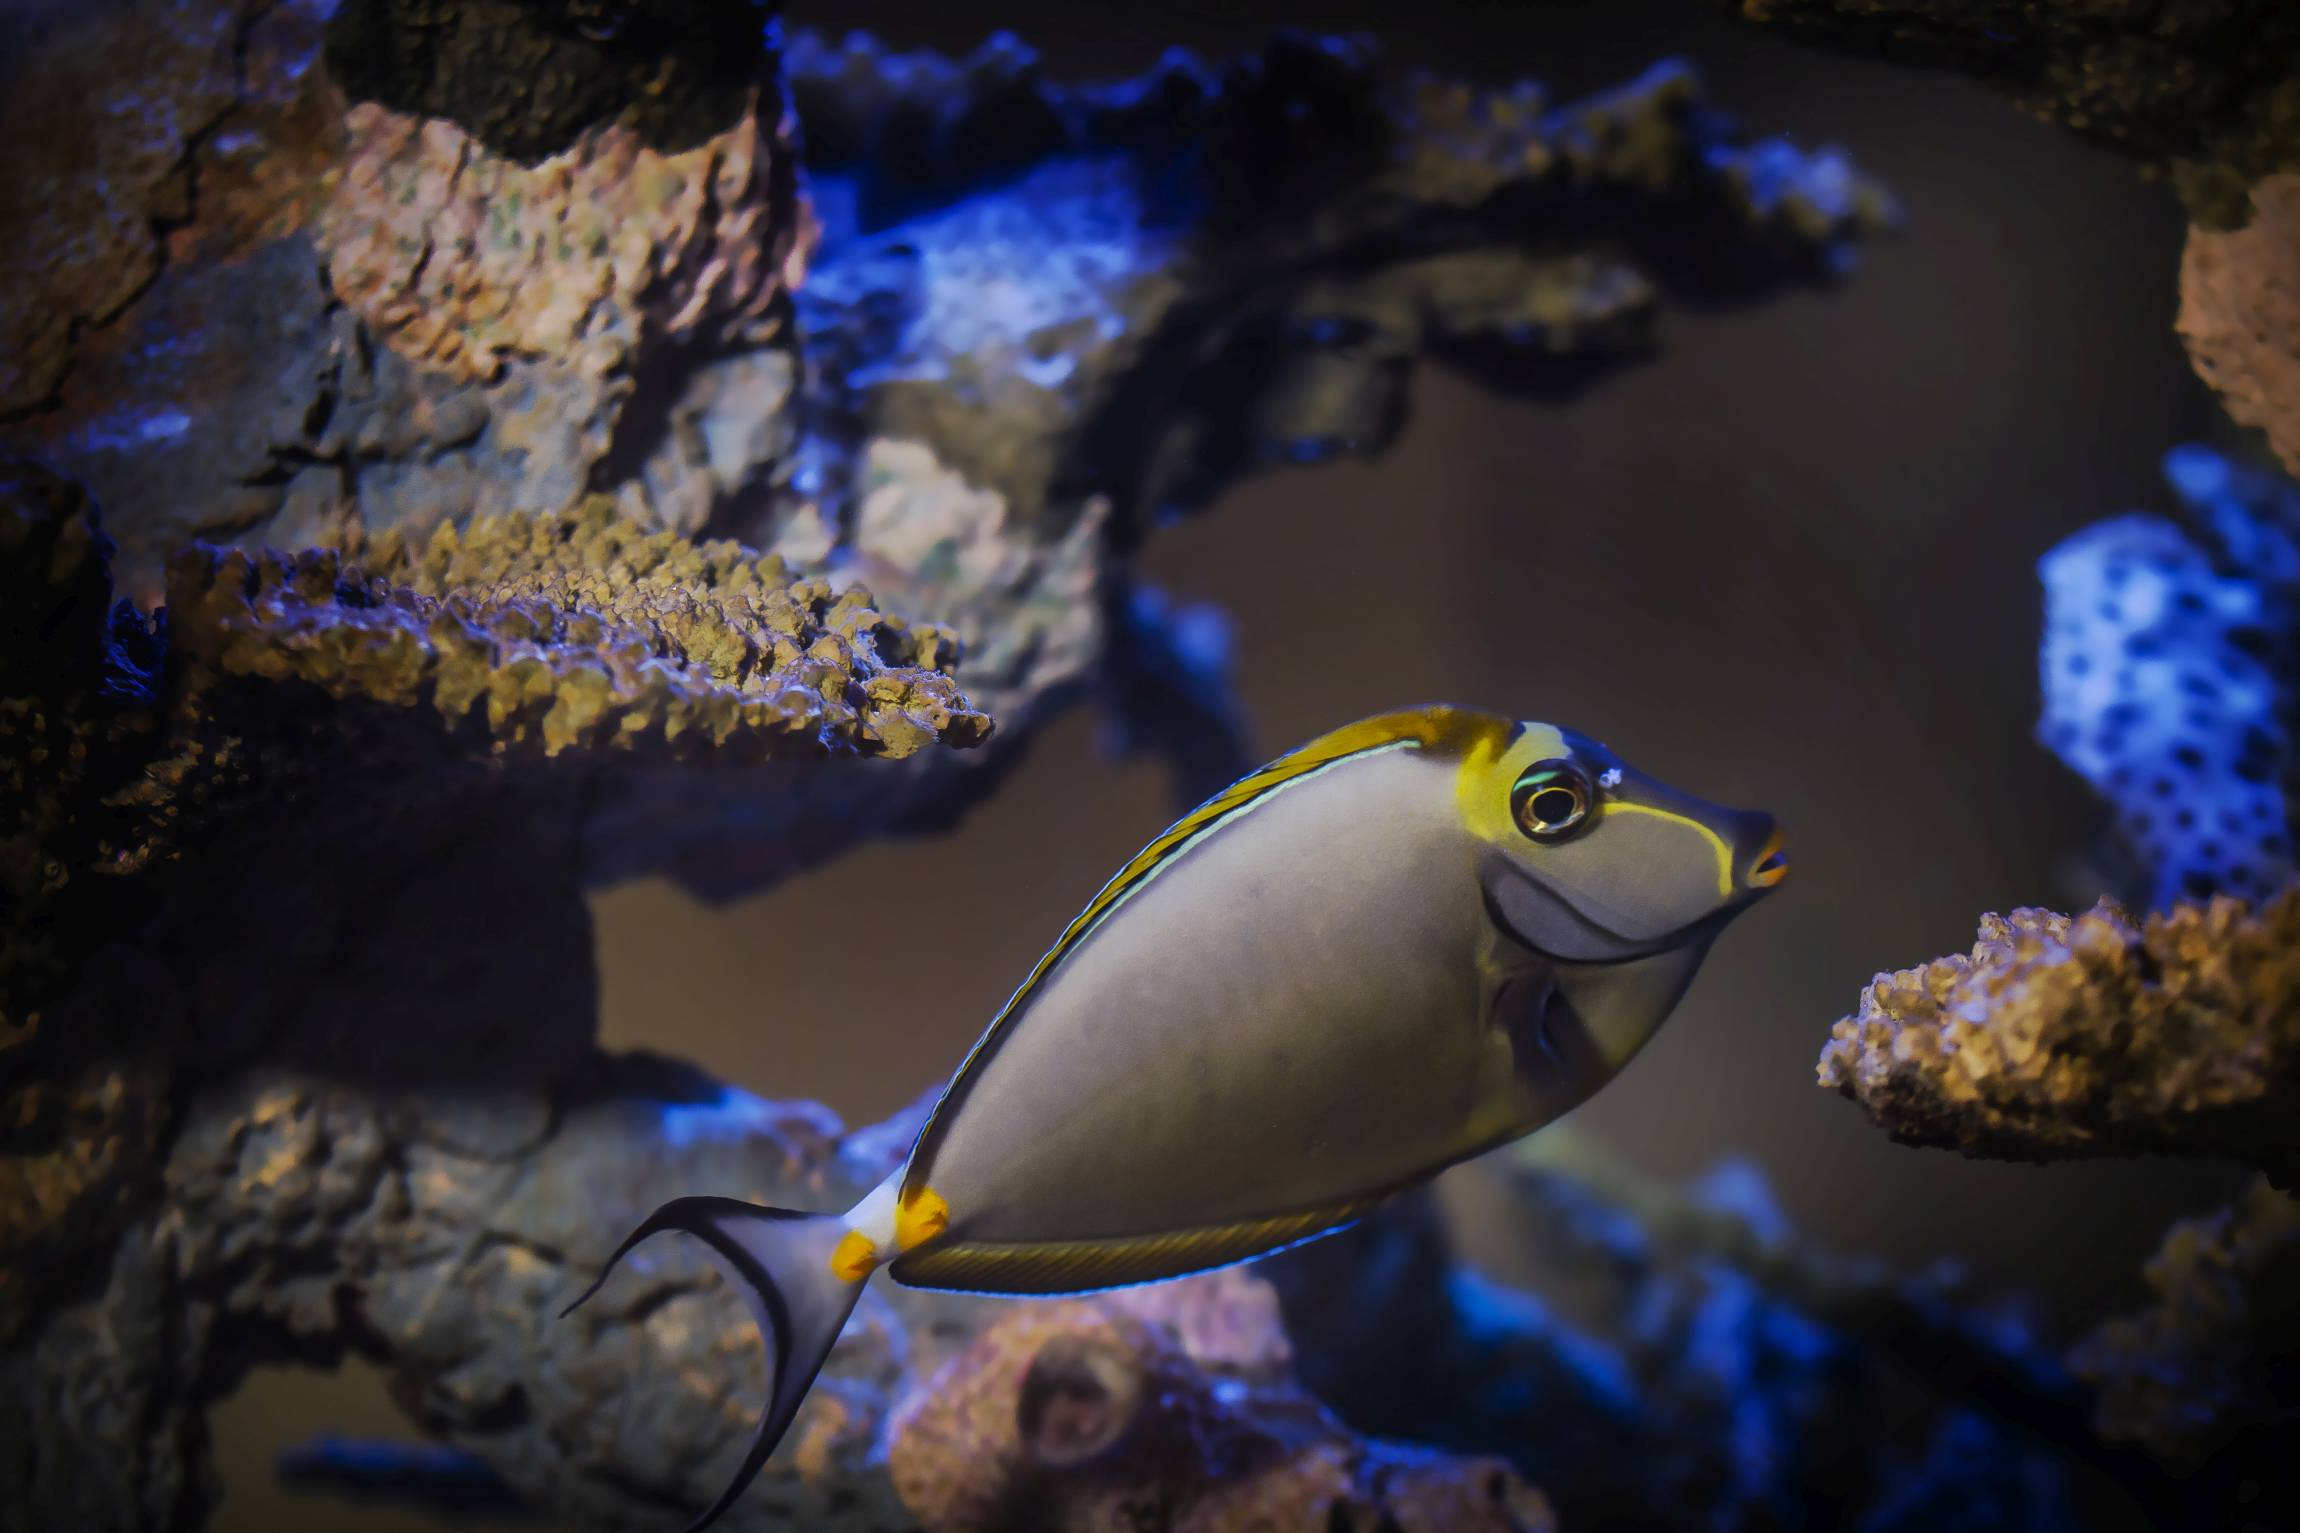 Yellow Fish Swimming in an Infinity Aquarium Design Tank